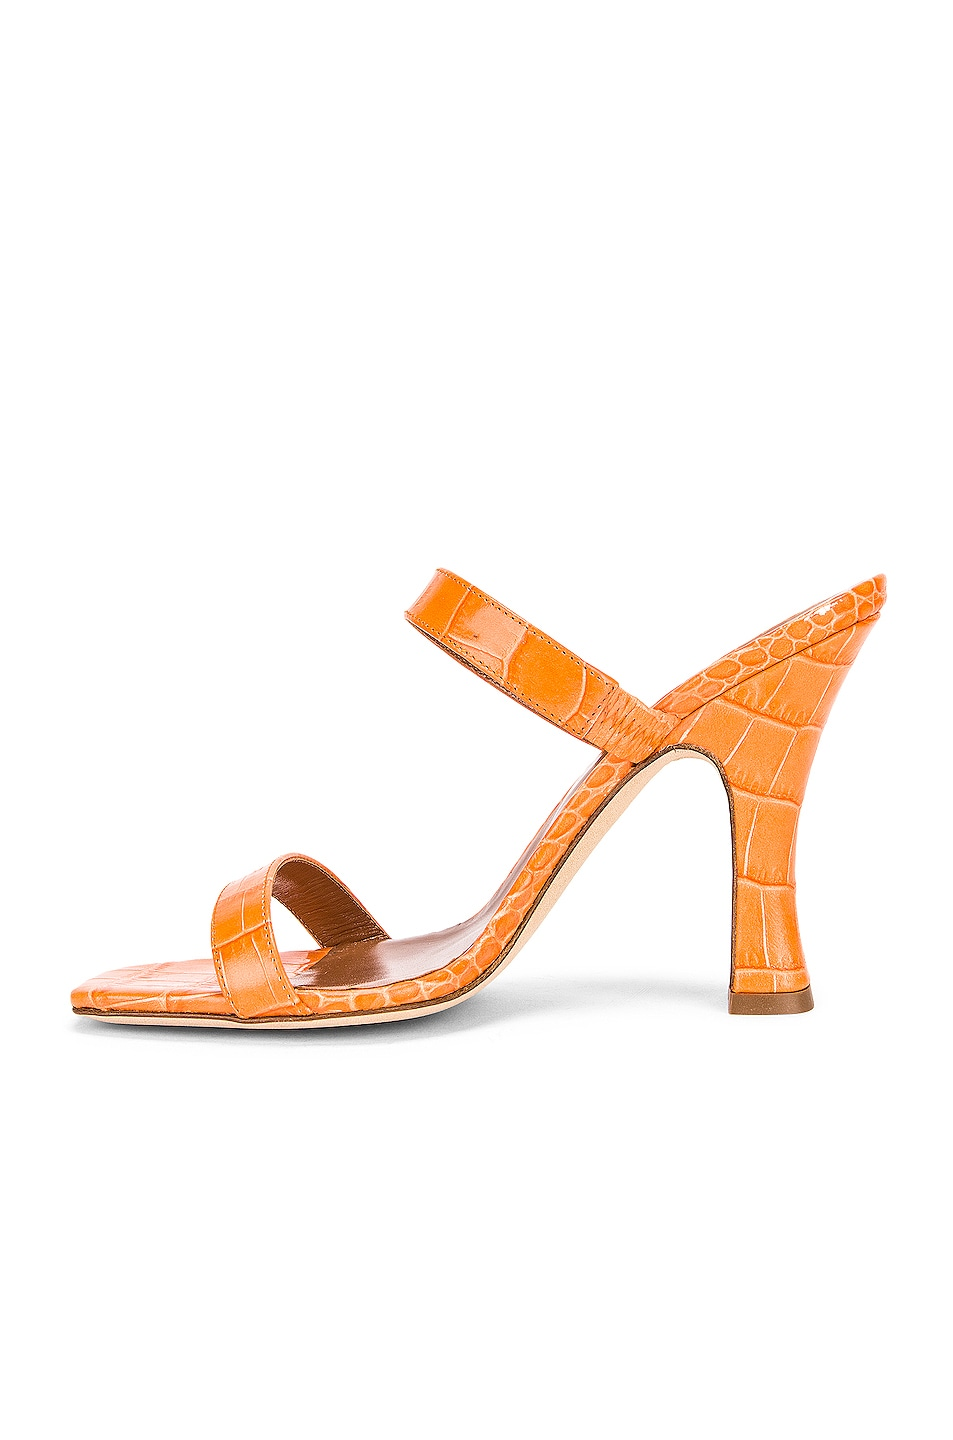 Image 5 of Paris Texas Moc Croco Mule in Orange